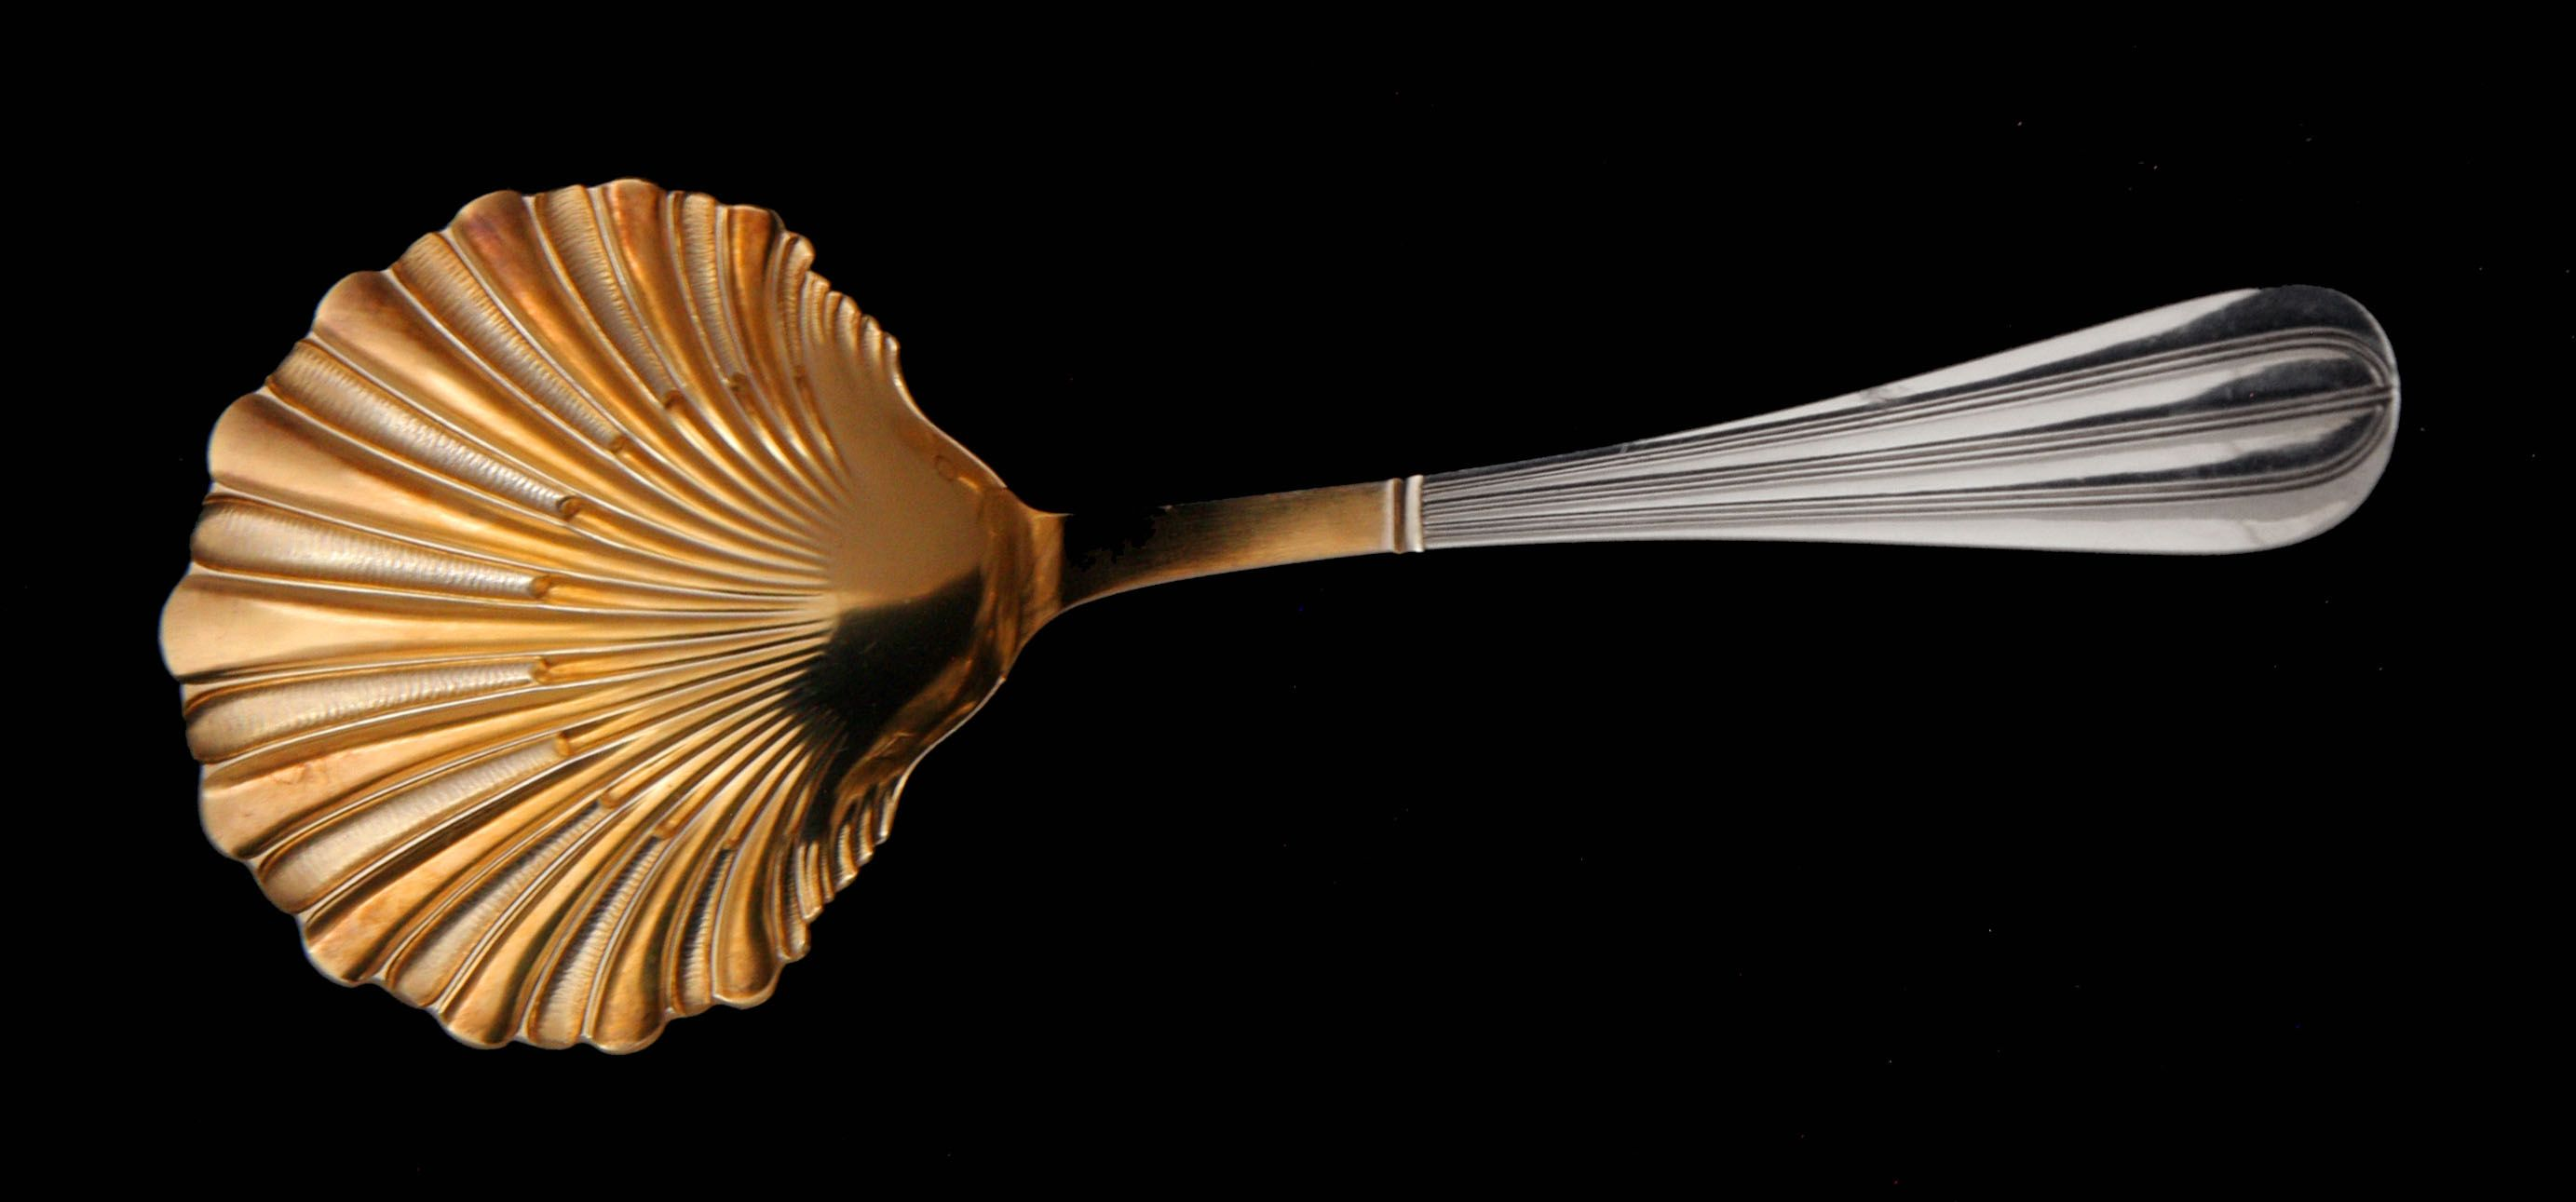 The Large Ice Cream Custard Serving Scoop With Vermeil